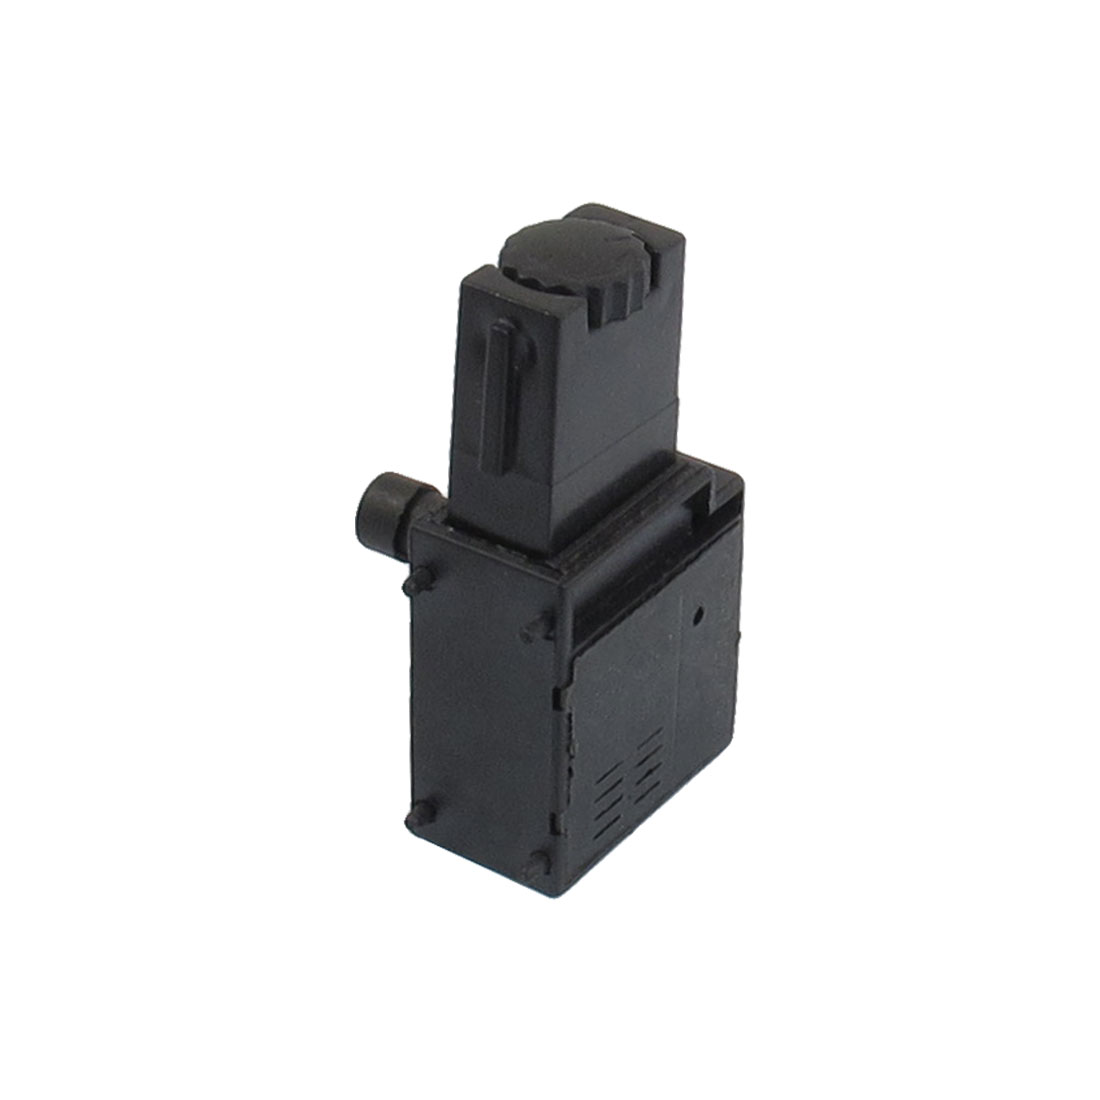 AC 250V 6A Lock On Electric Drill Trigger Switch for Hitachi 10VA